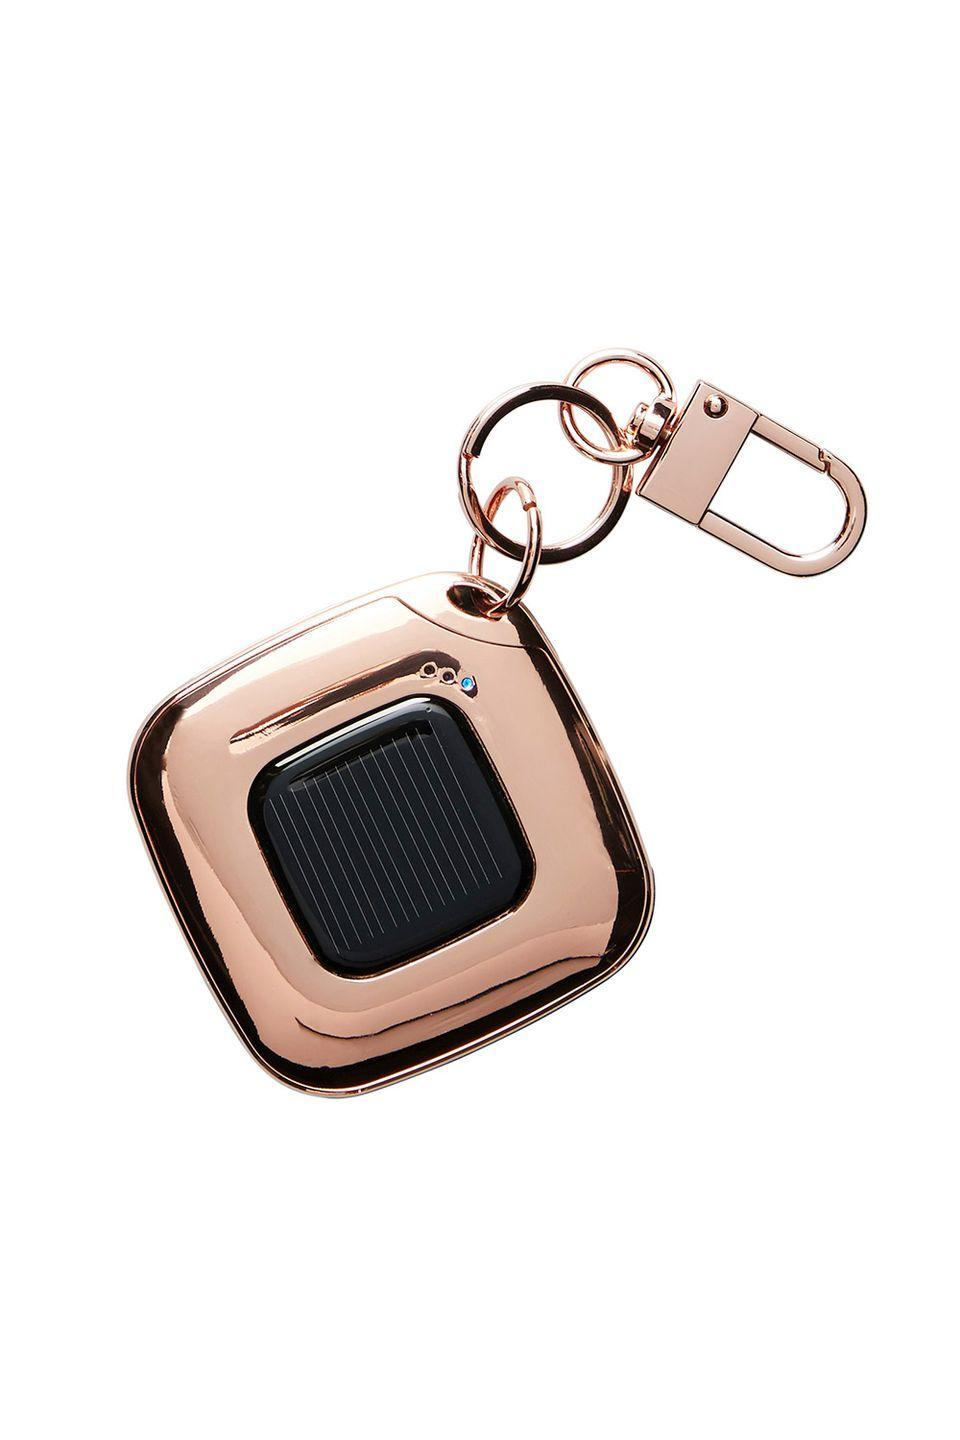 """<p>Who isn't running out of battery by last period?</p><p>Anthropologie solar portable charger, $34, <a href=""""https://www.anthropologie.com/"""" rel=""""nofollow noopener"""" target=""""_blank"""" data-ylk=""""slk:anthropologie.com"""" class=""""link rapid-noclick-resp"""">anthropologie.com</a></p>"""